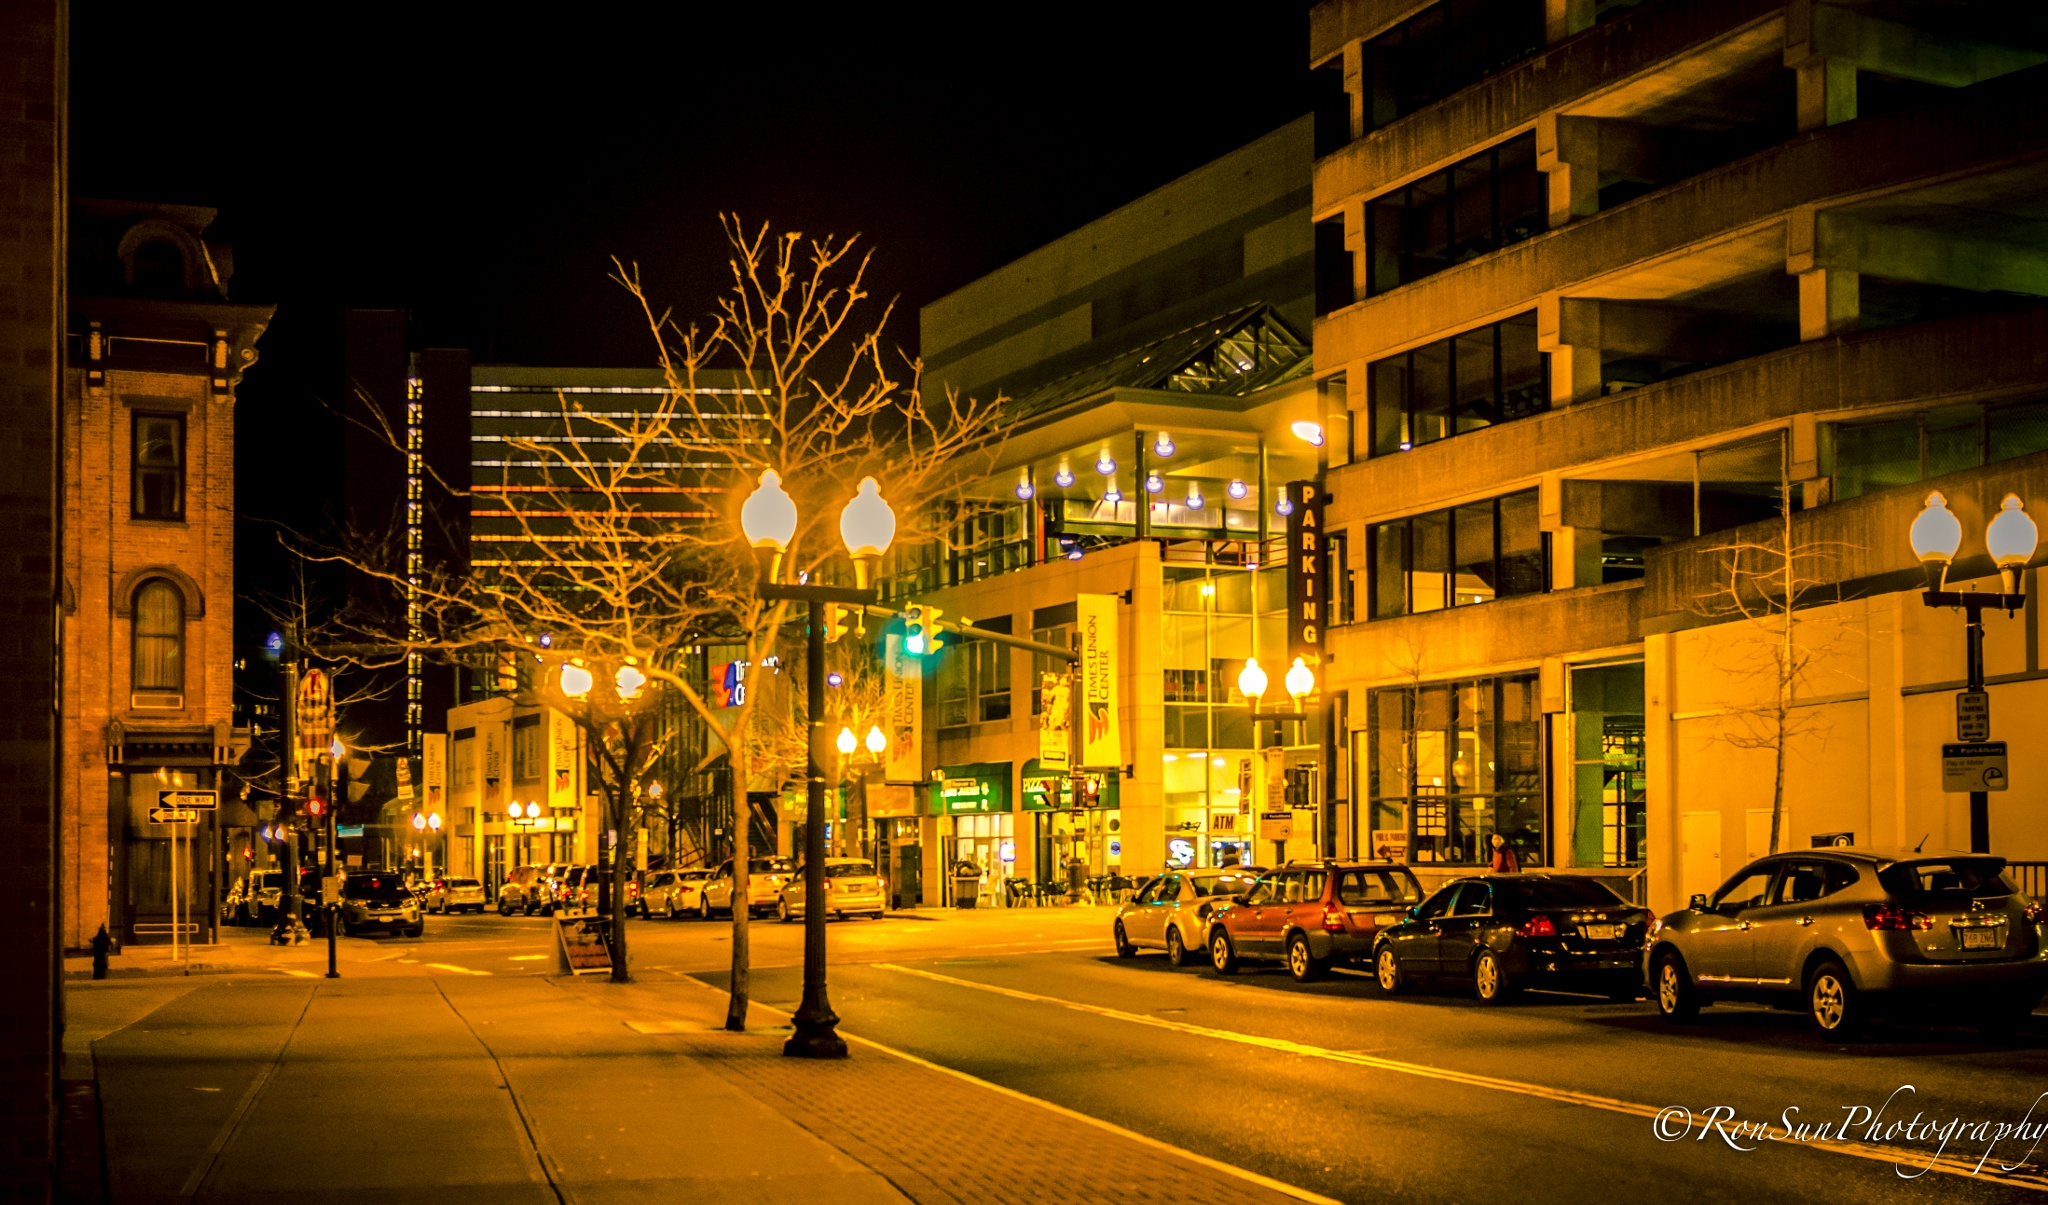 Times Union Center * by ronsunphoto